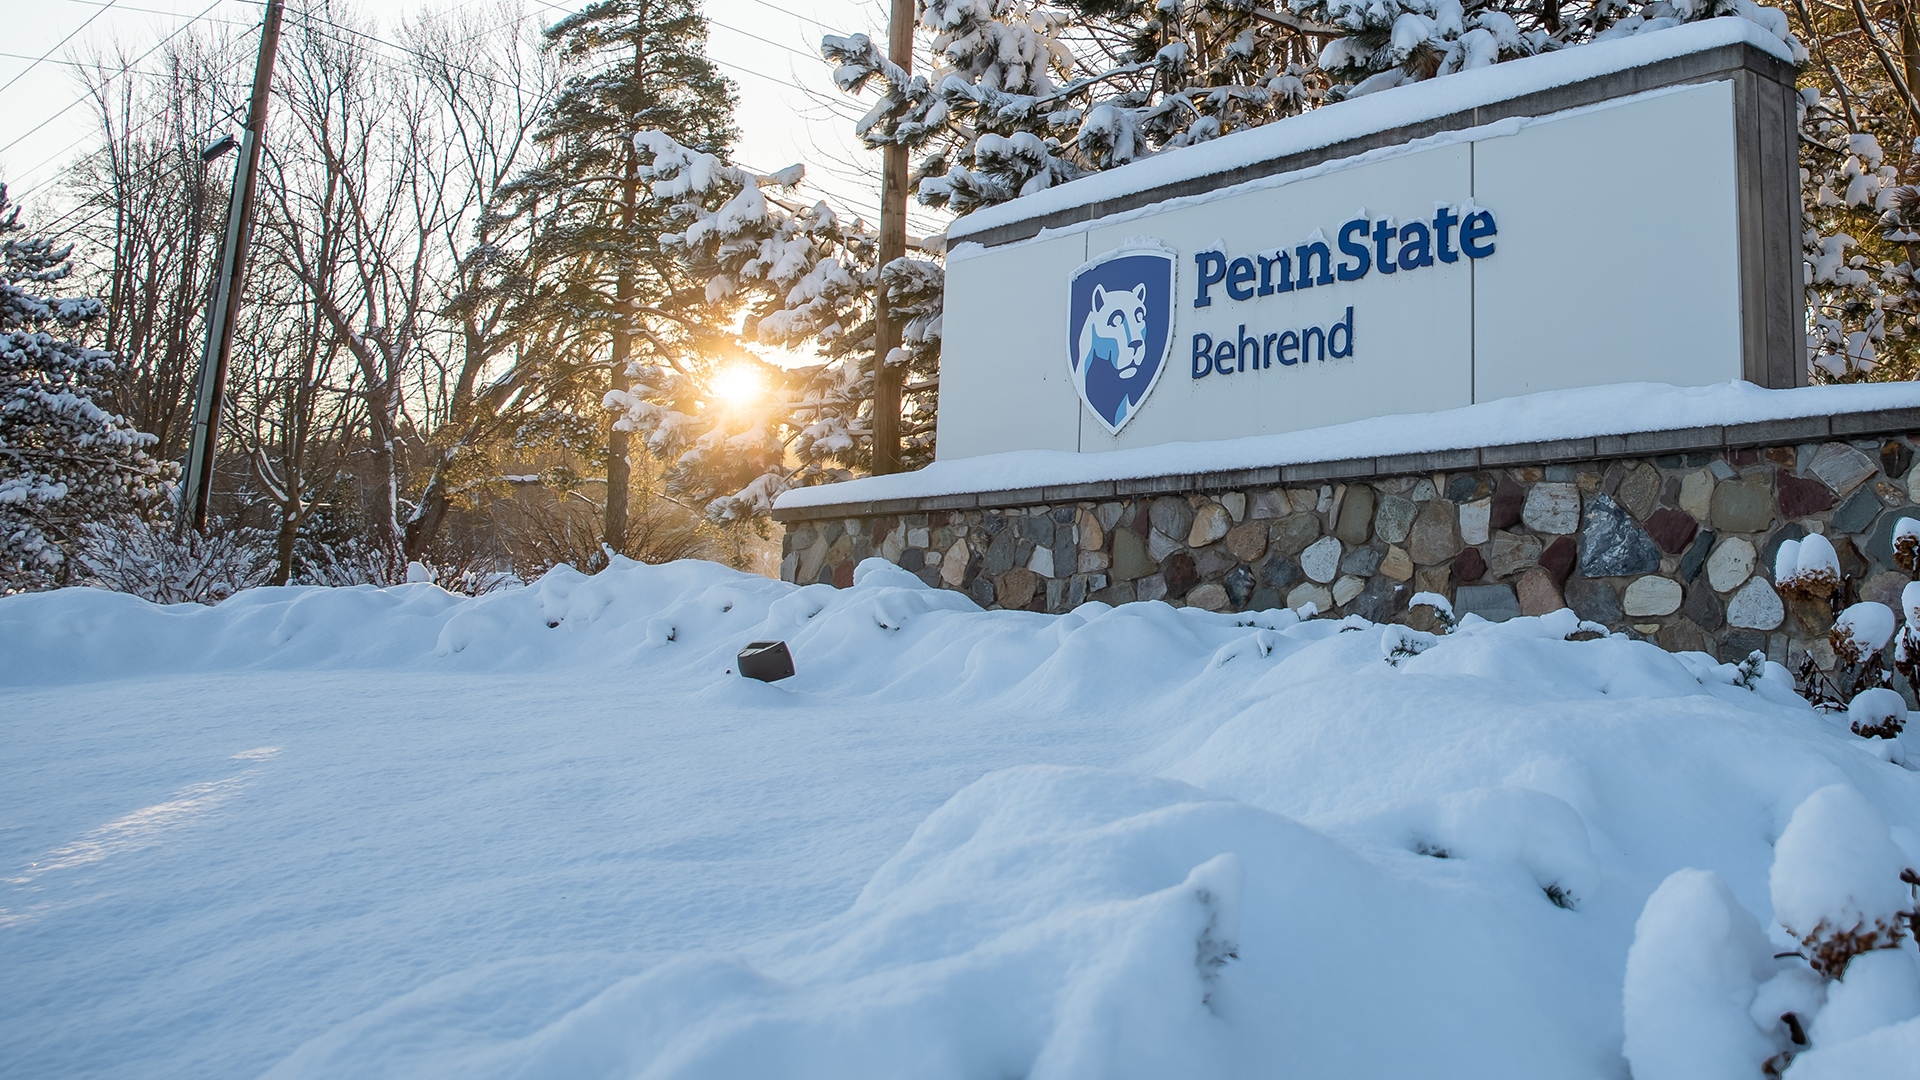 Penn State Behrend entrance sign in winter